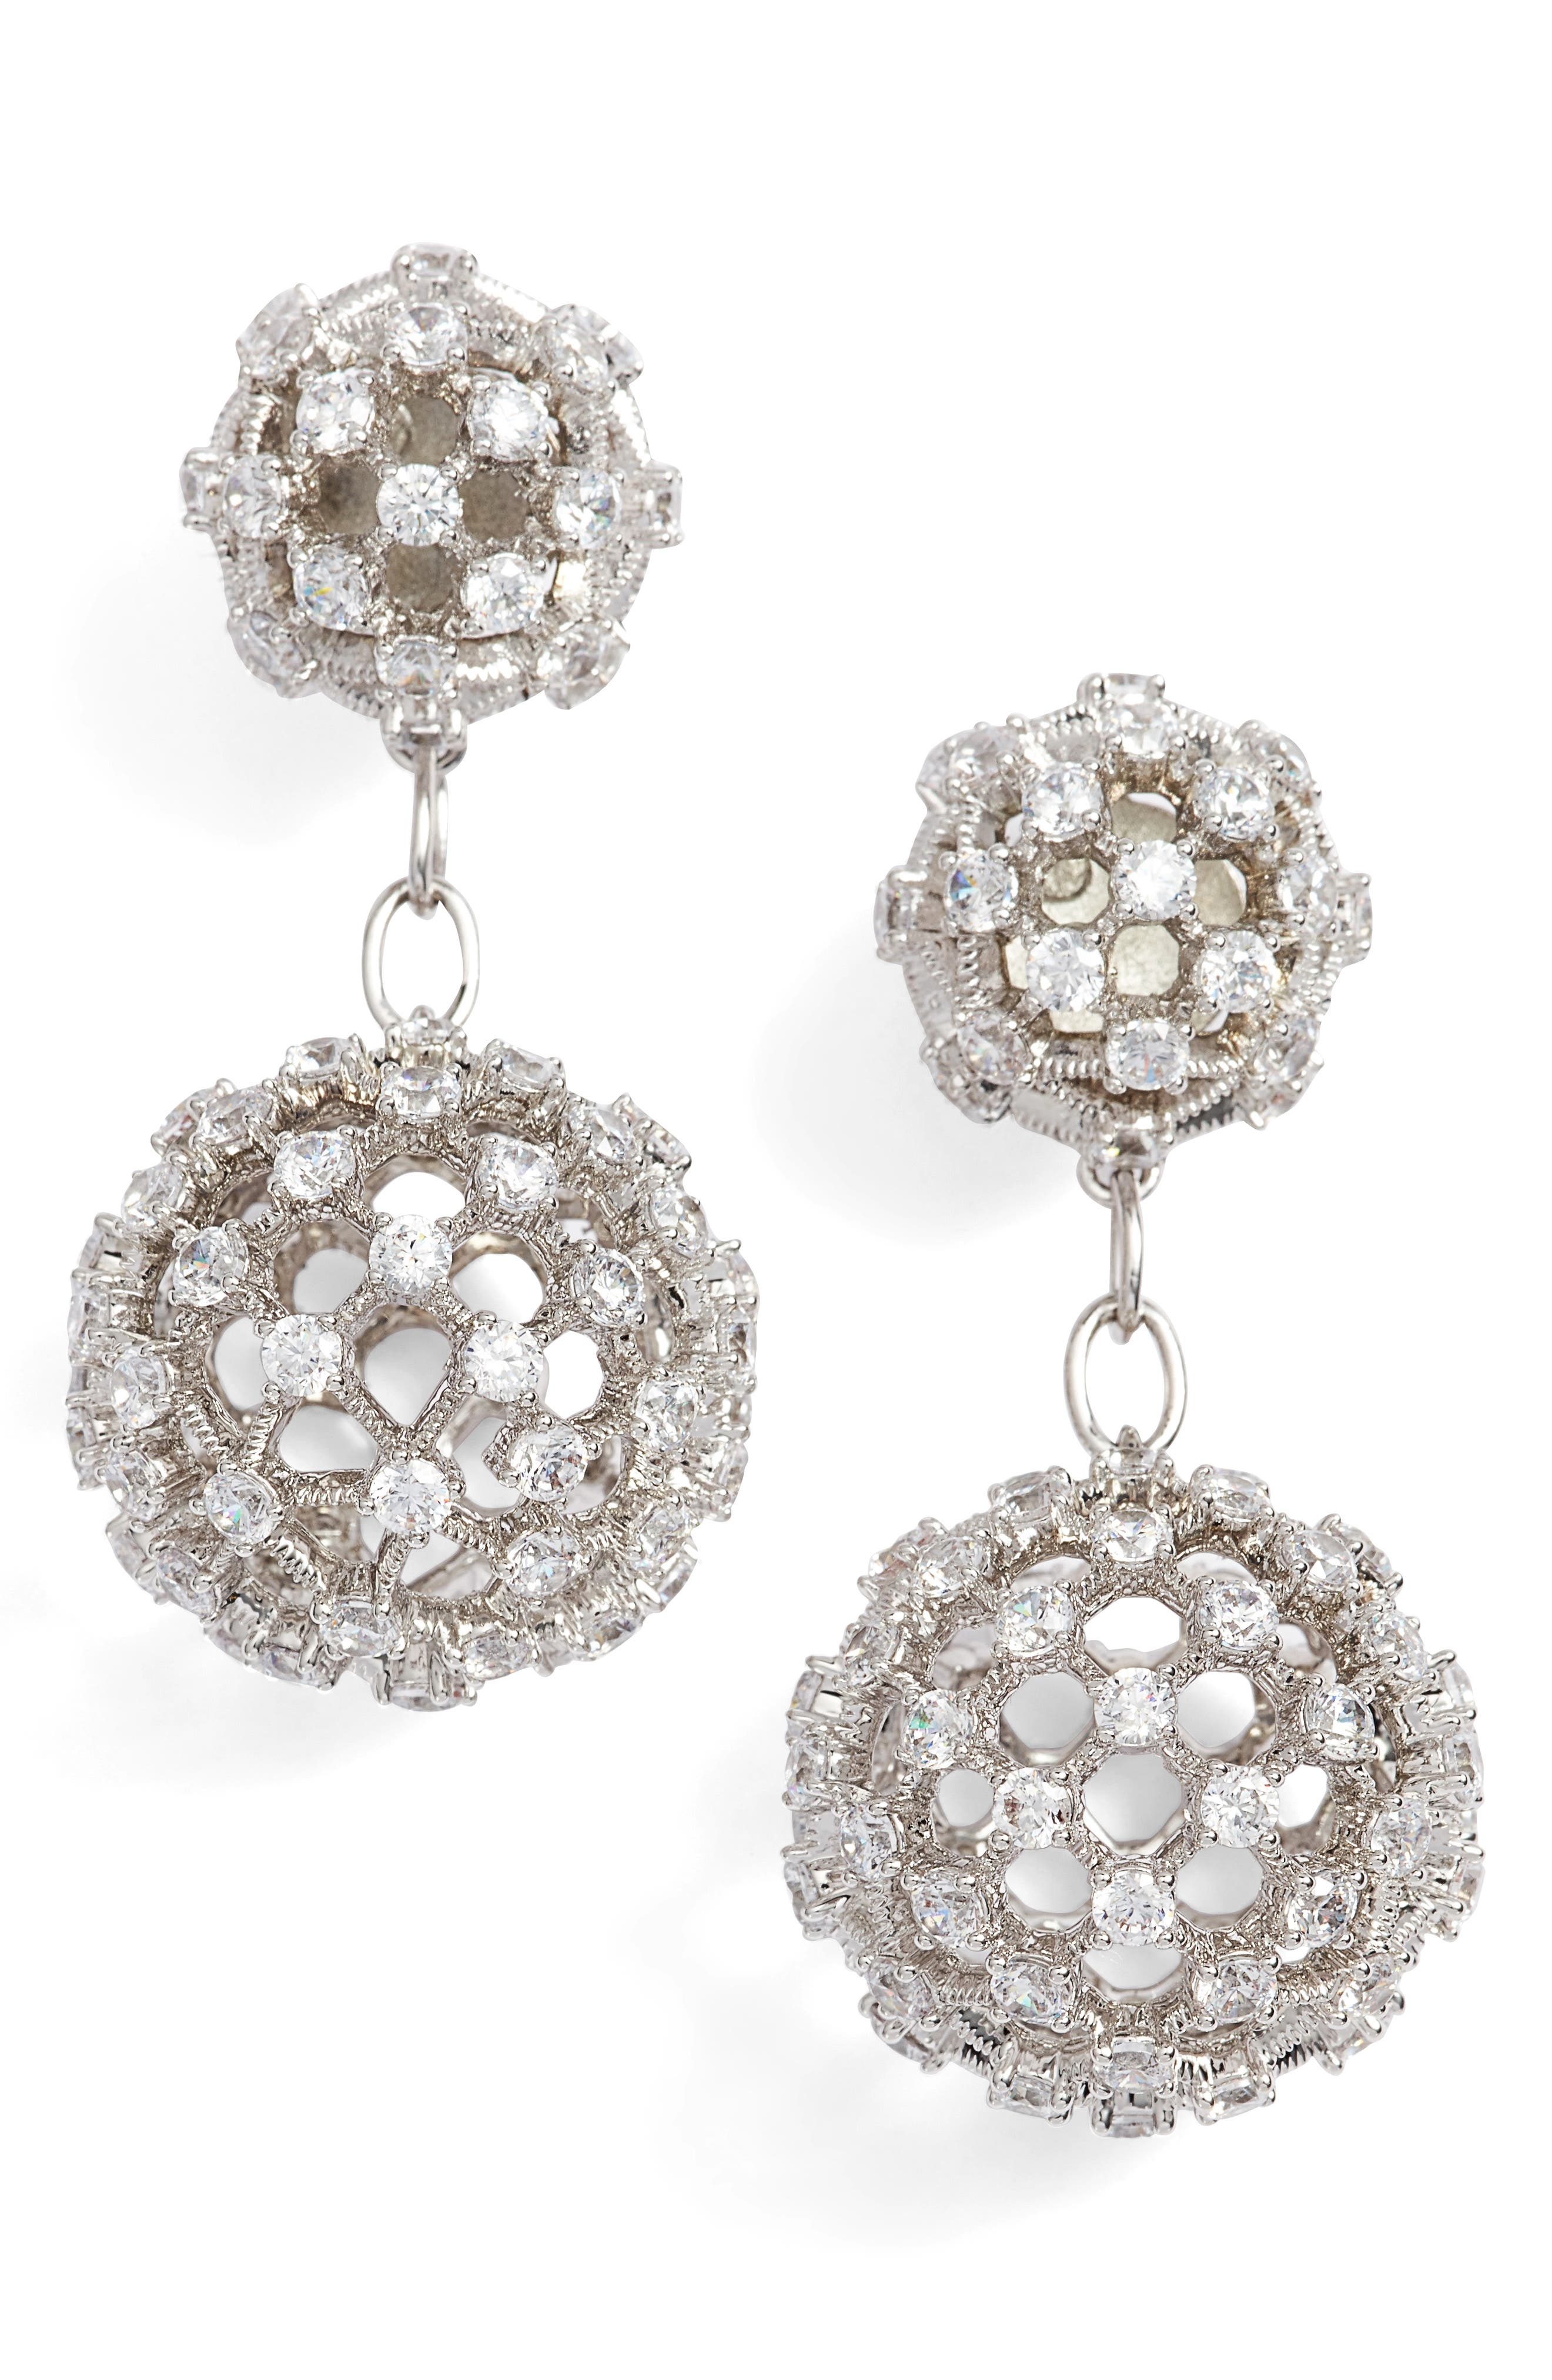 Main Image - Nadri Cubic Zirconia Double Drop Earrings